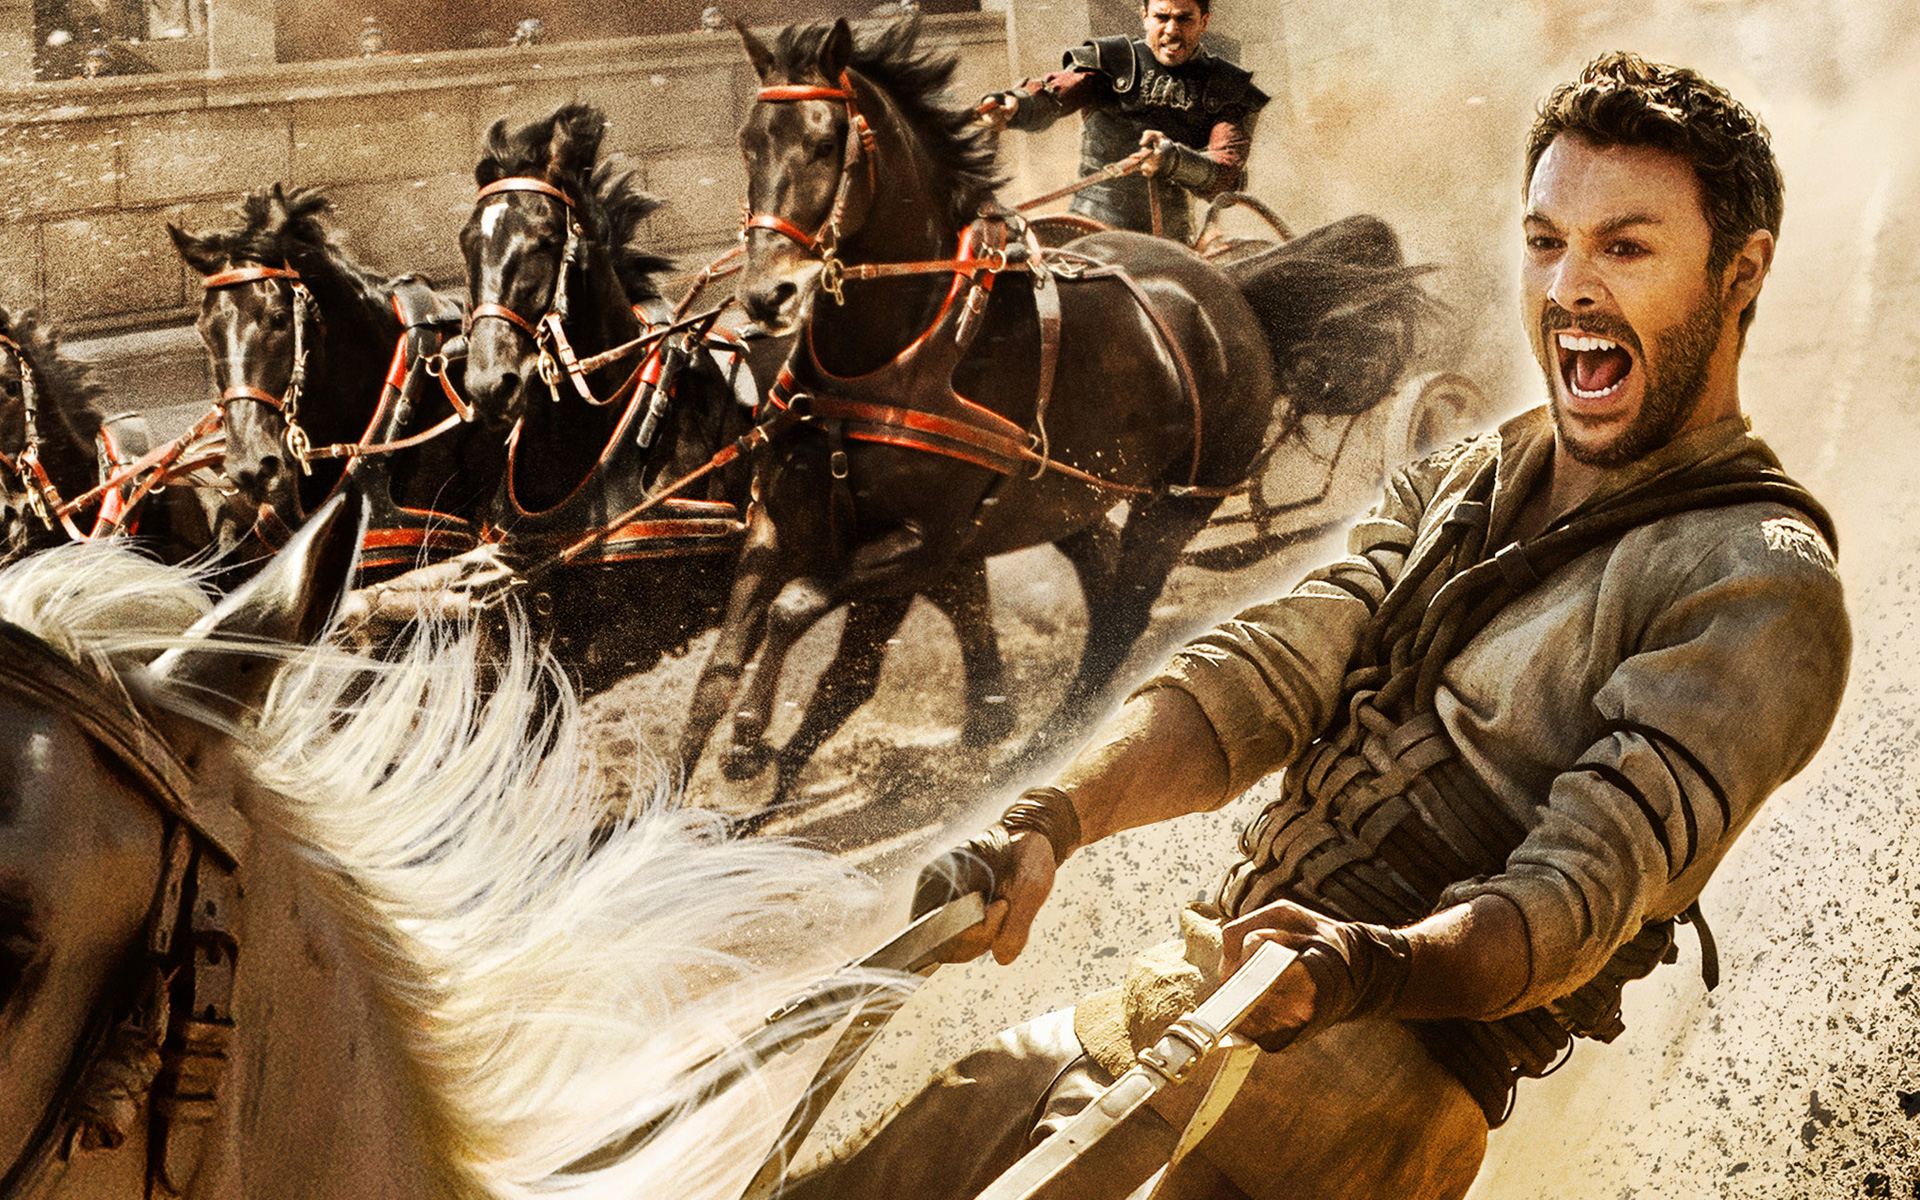 'Ben-Hur' is an epic flop for Paramount